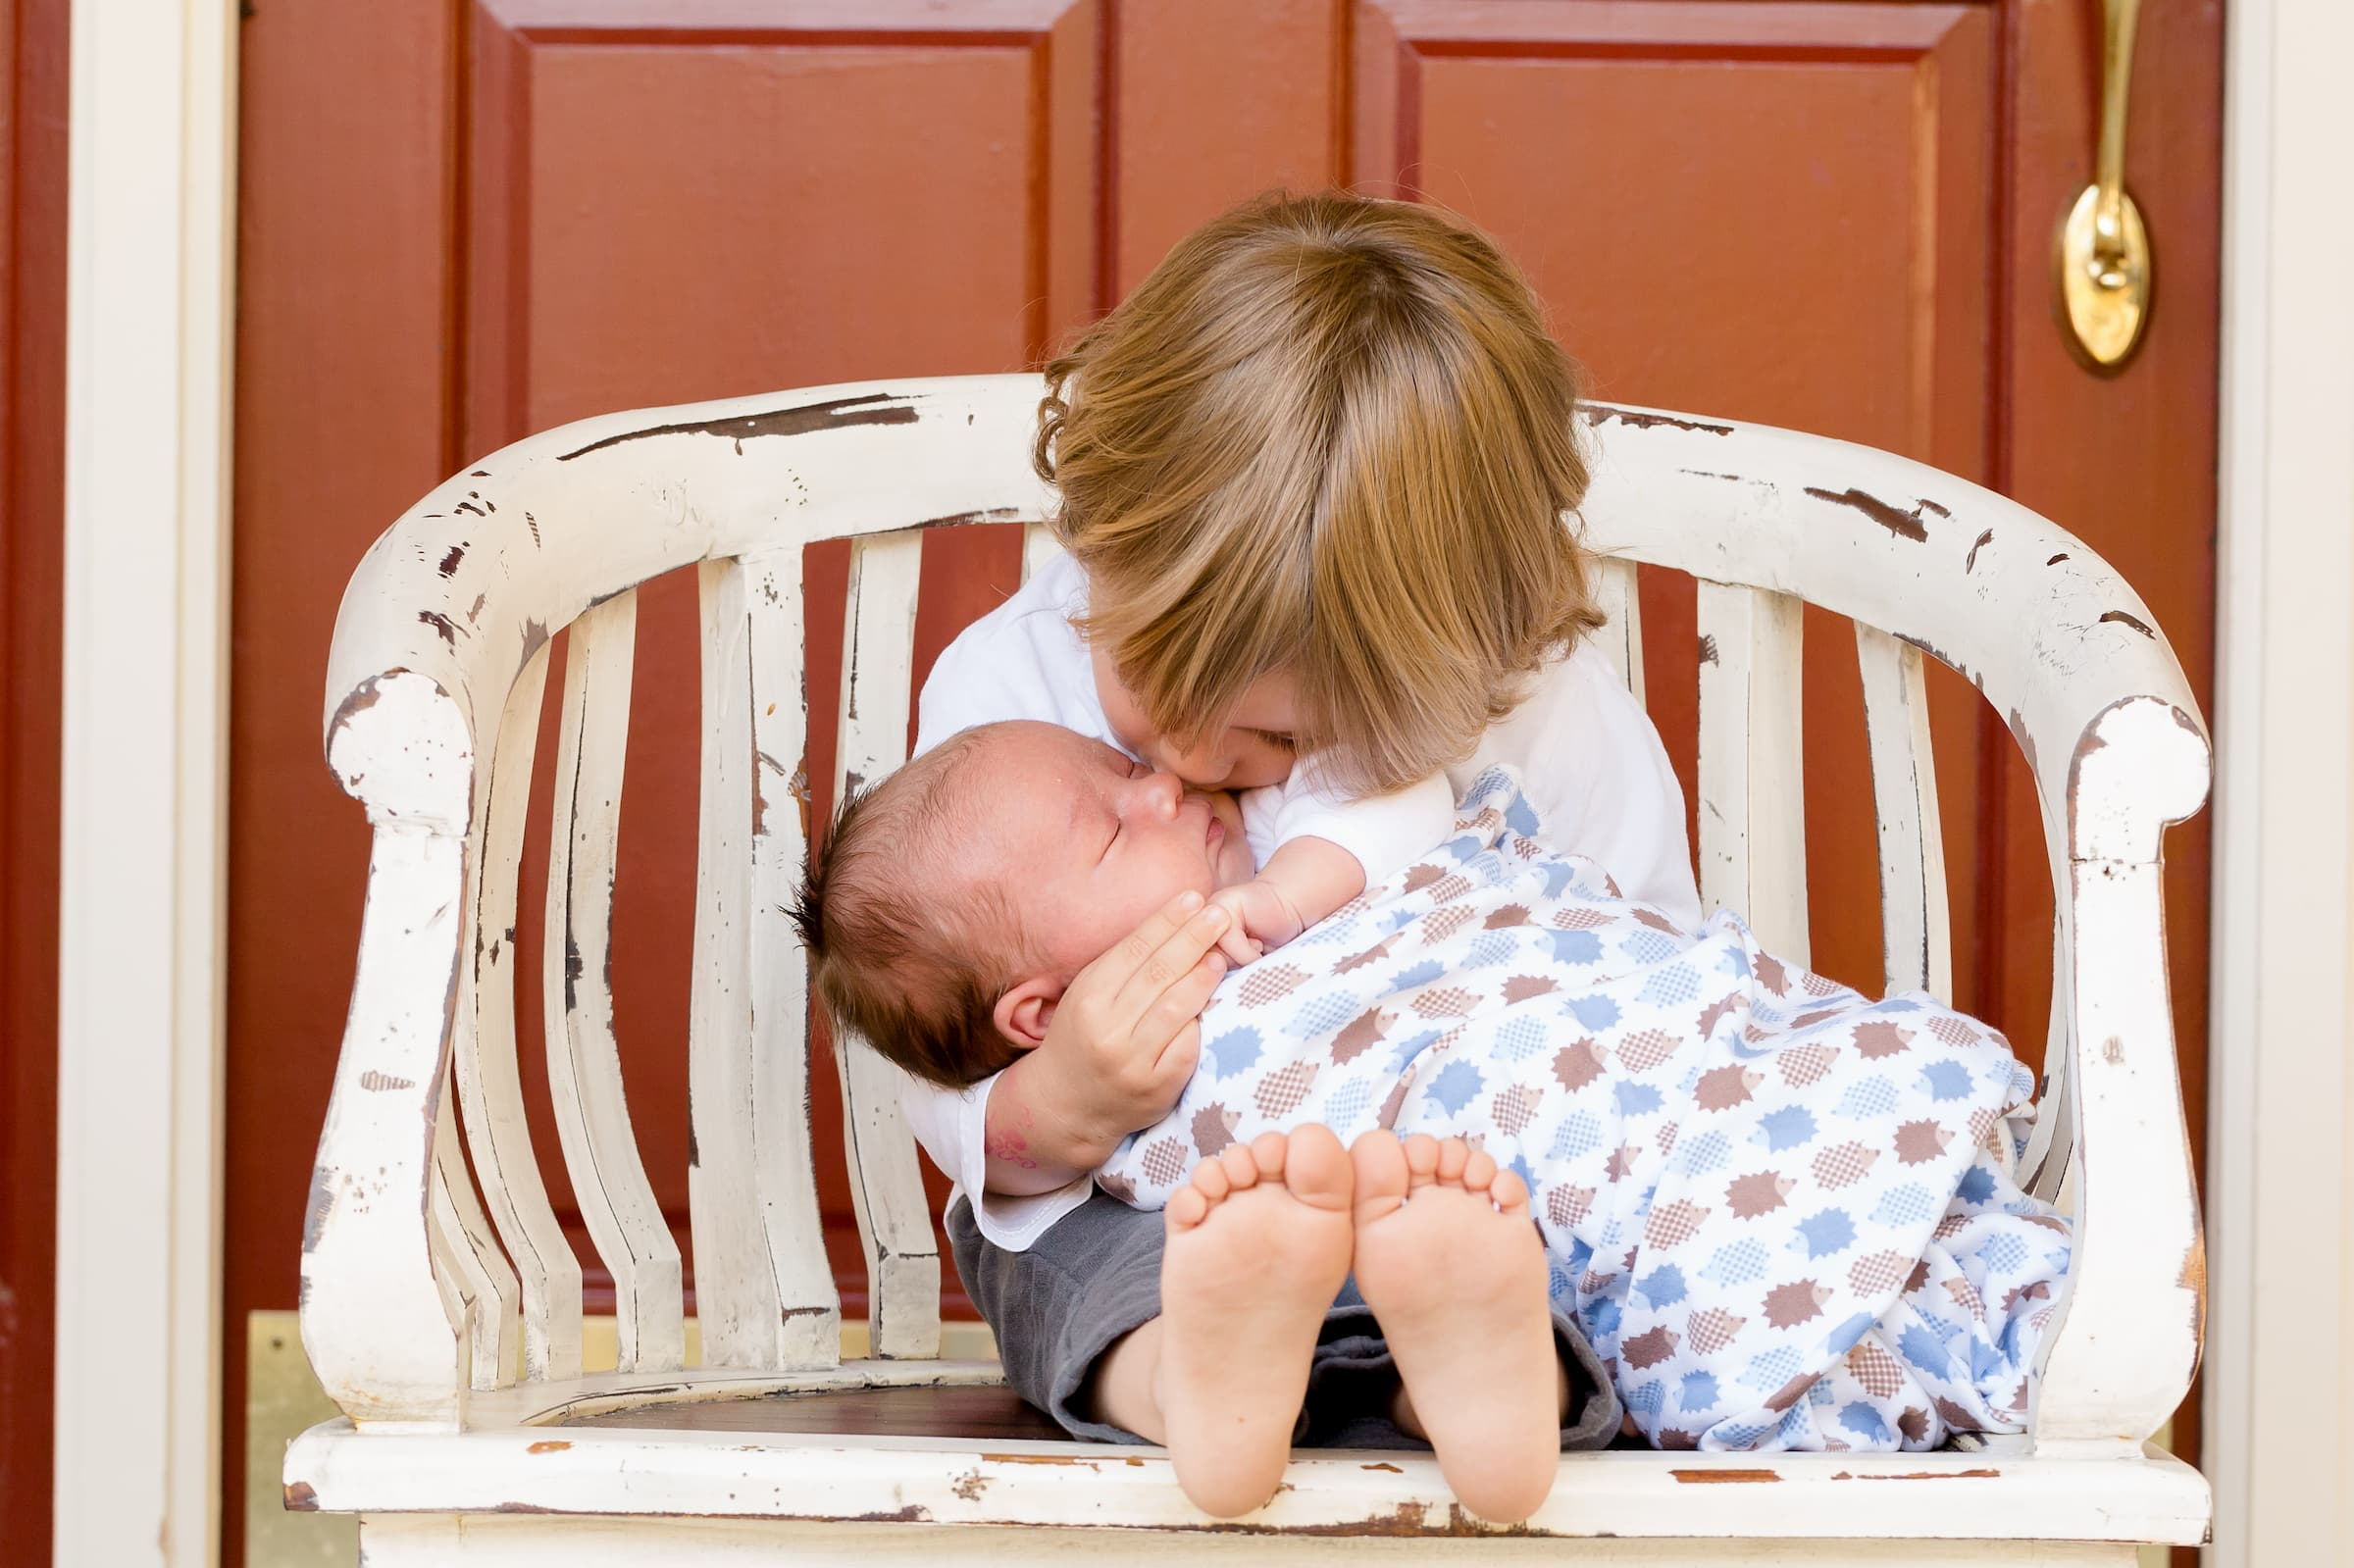 older brother toddler holding newborn baby brother sitting on white chair in front of red door